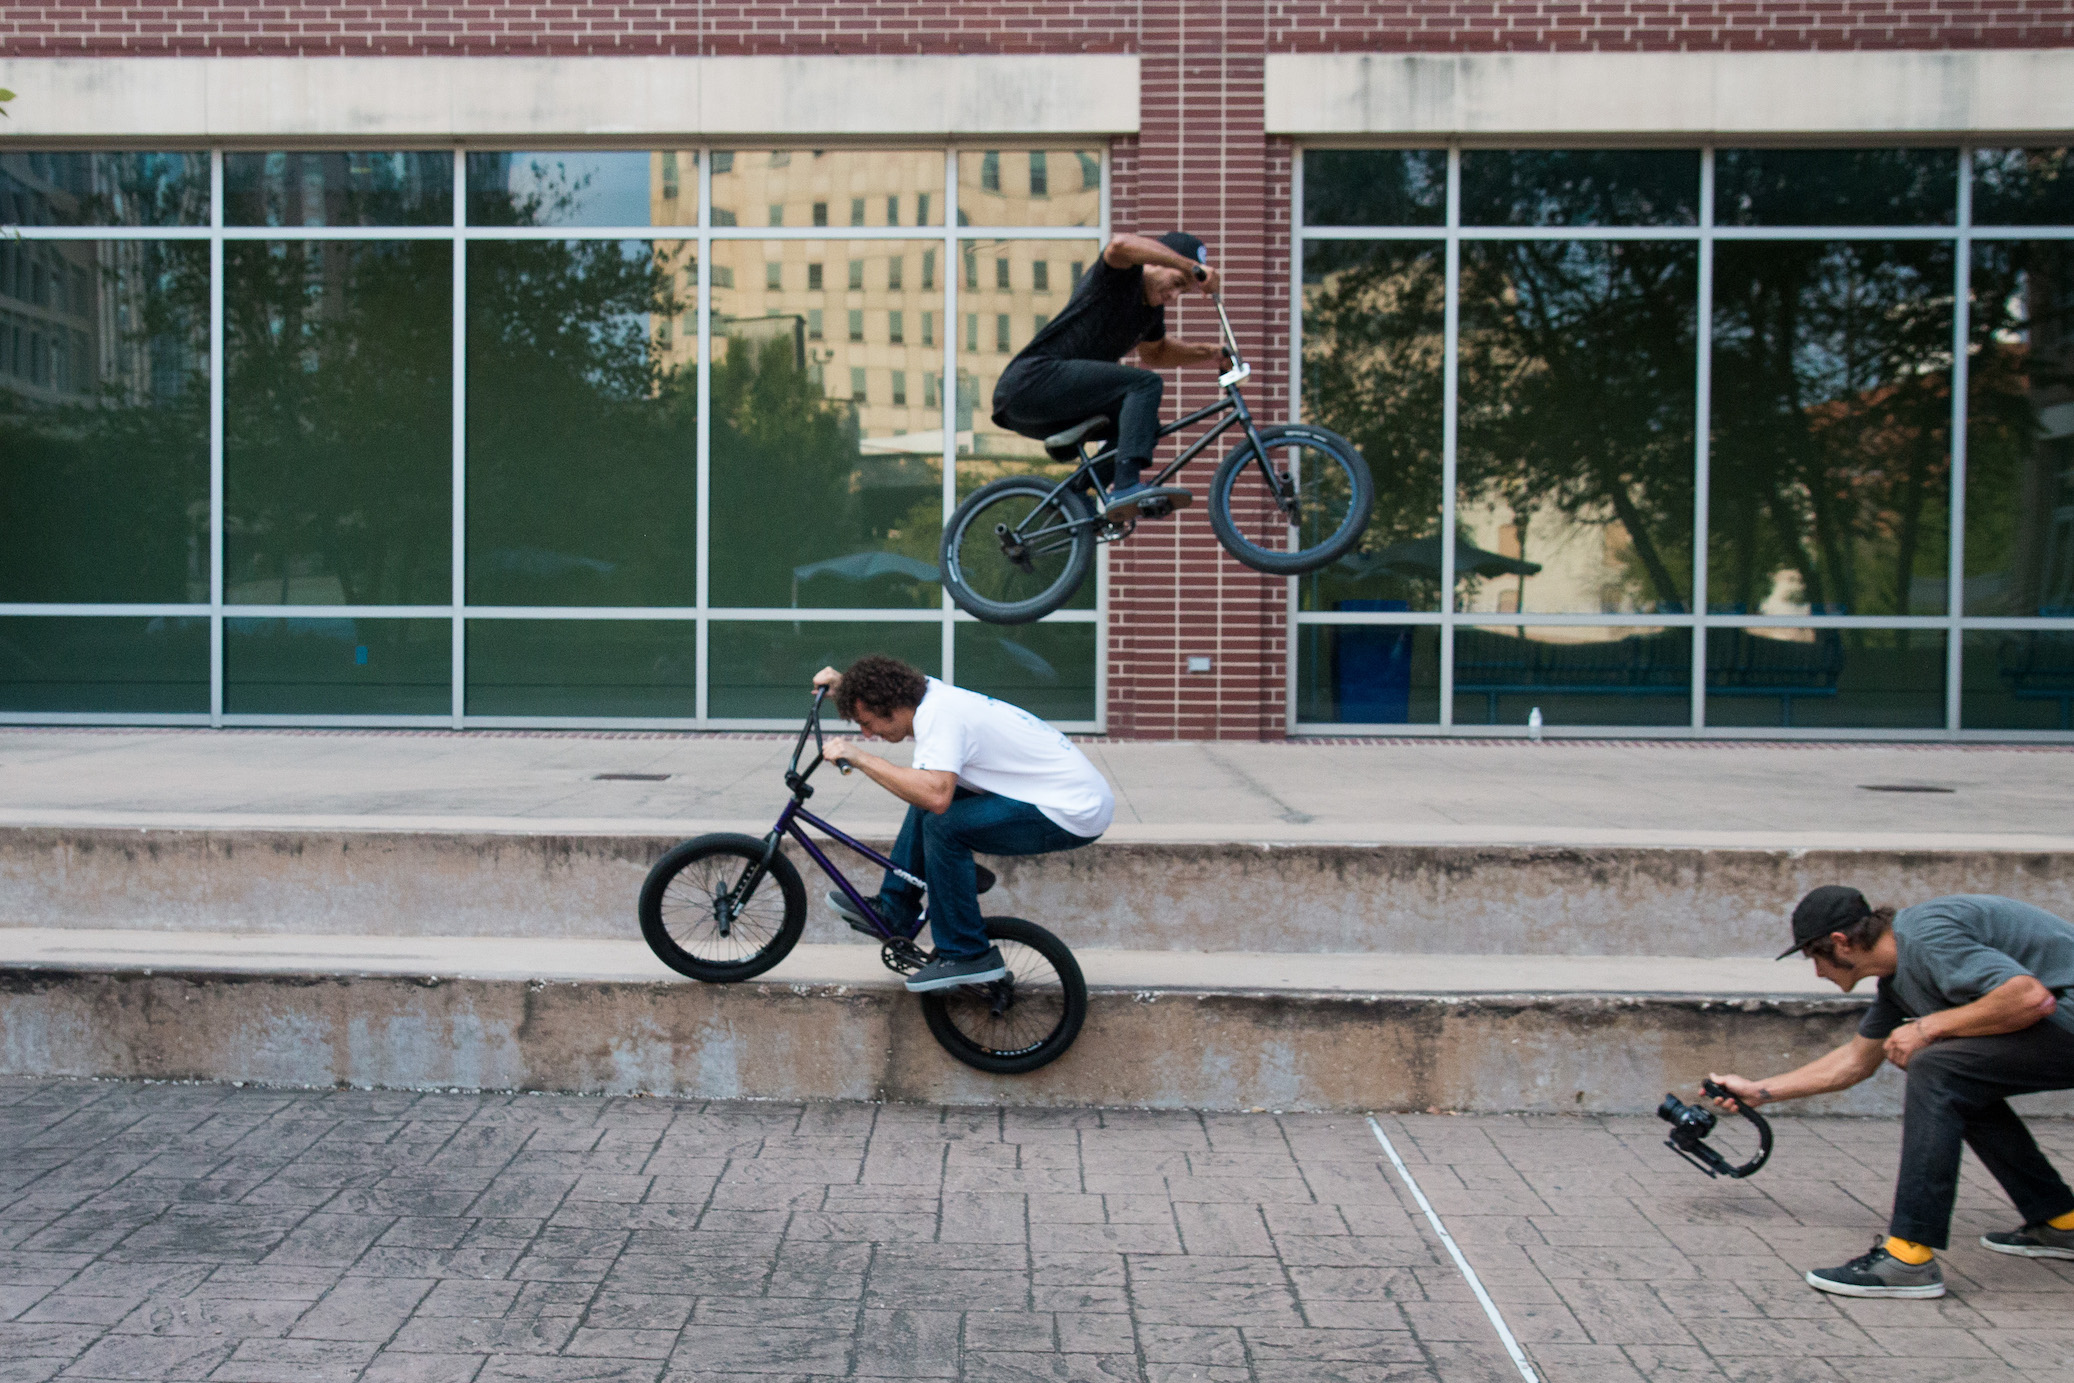 20170910 sunday street ride Chad McClain_half res_5.jpg